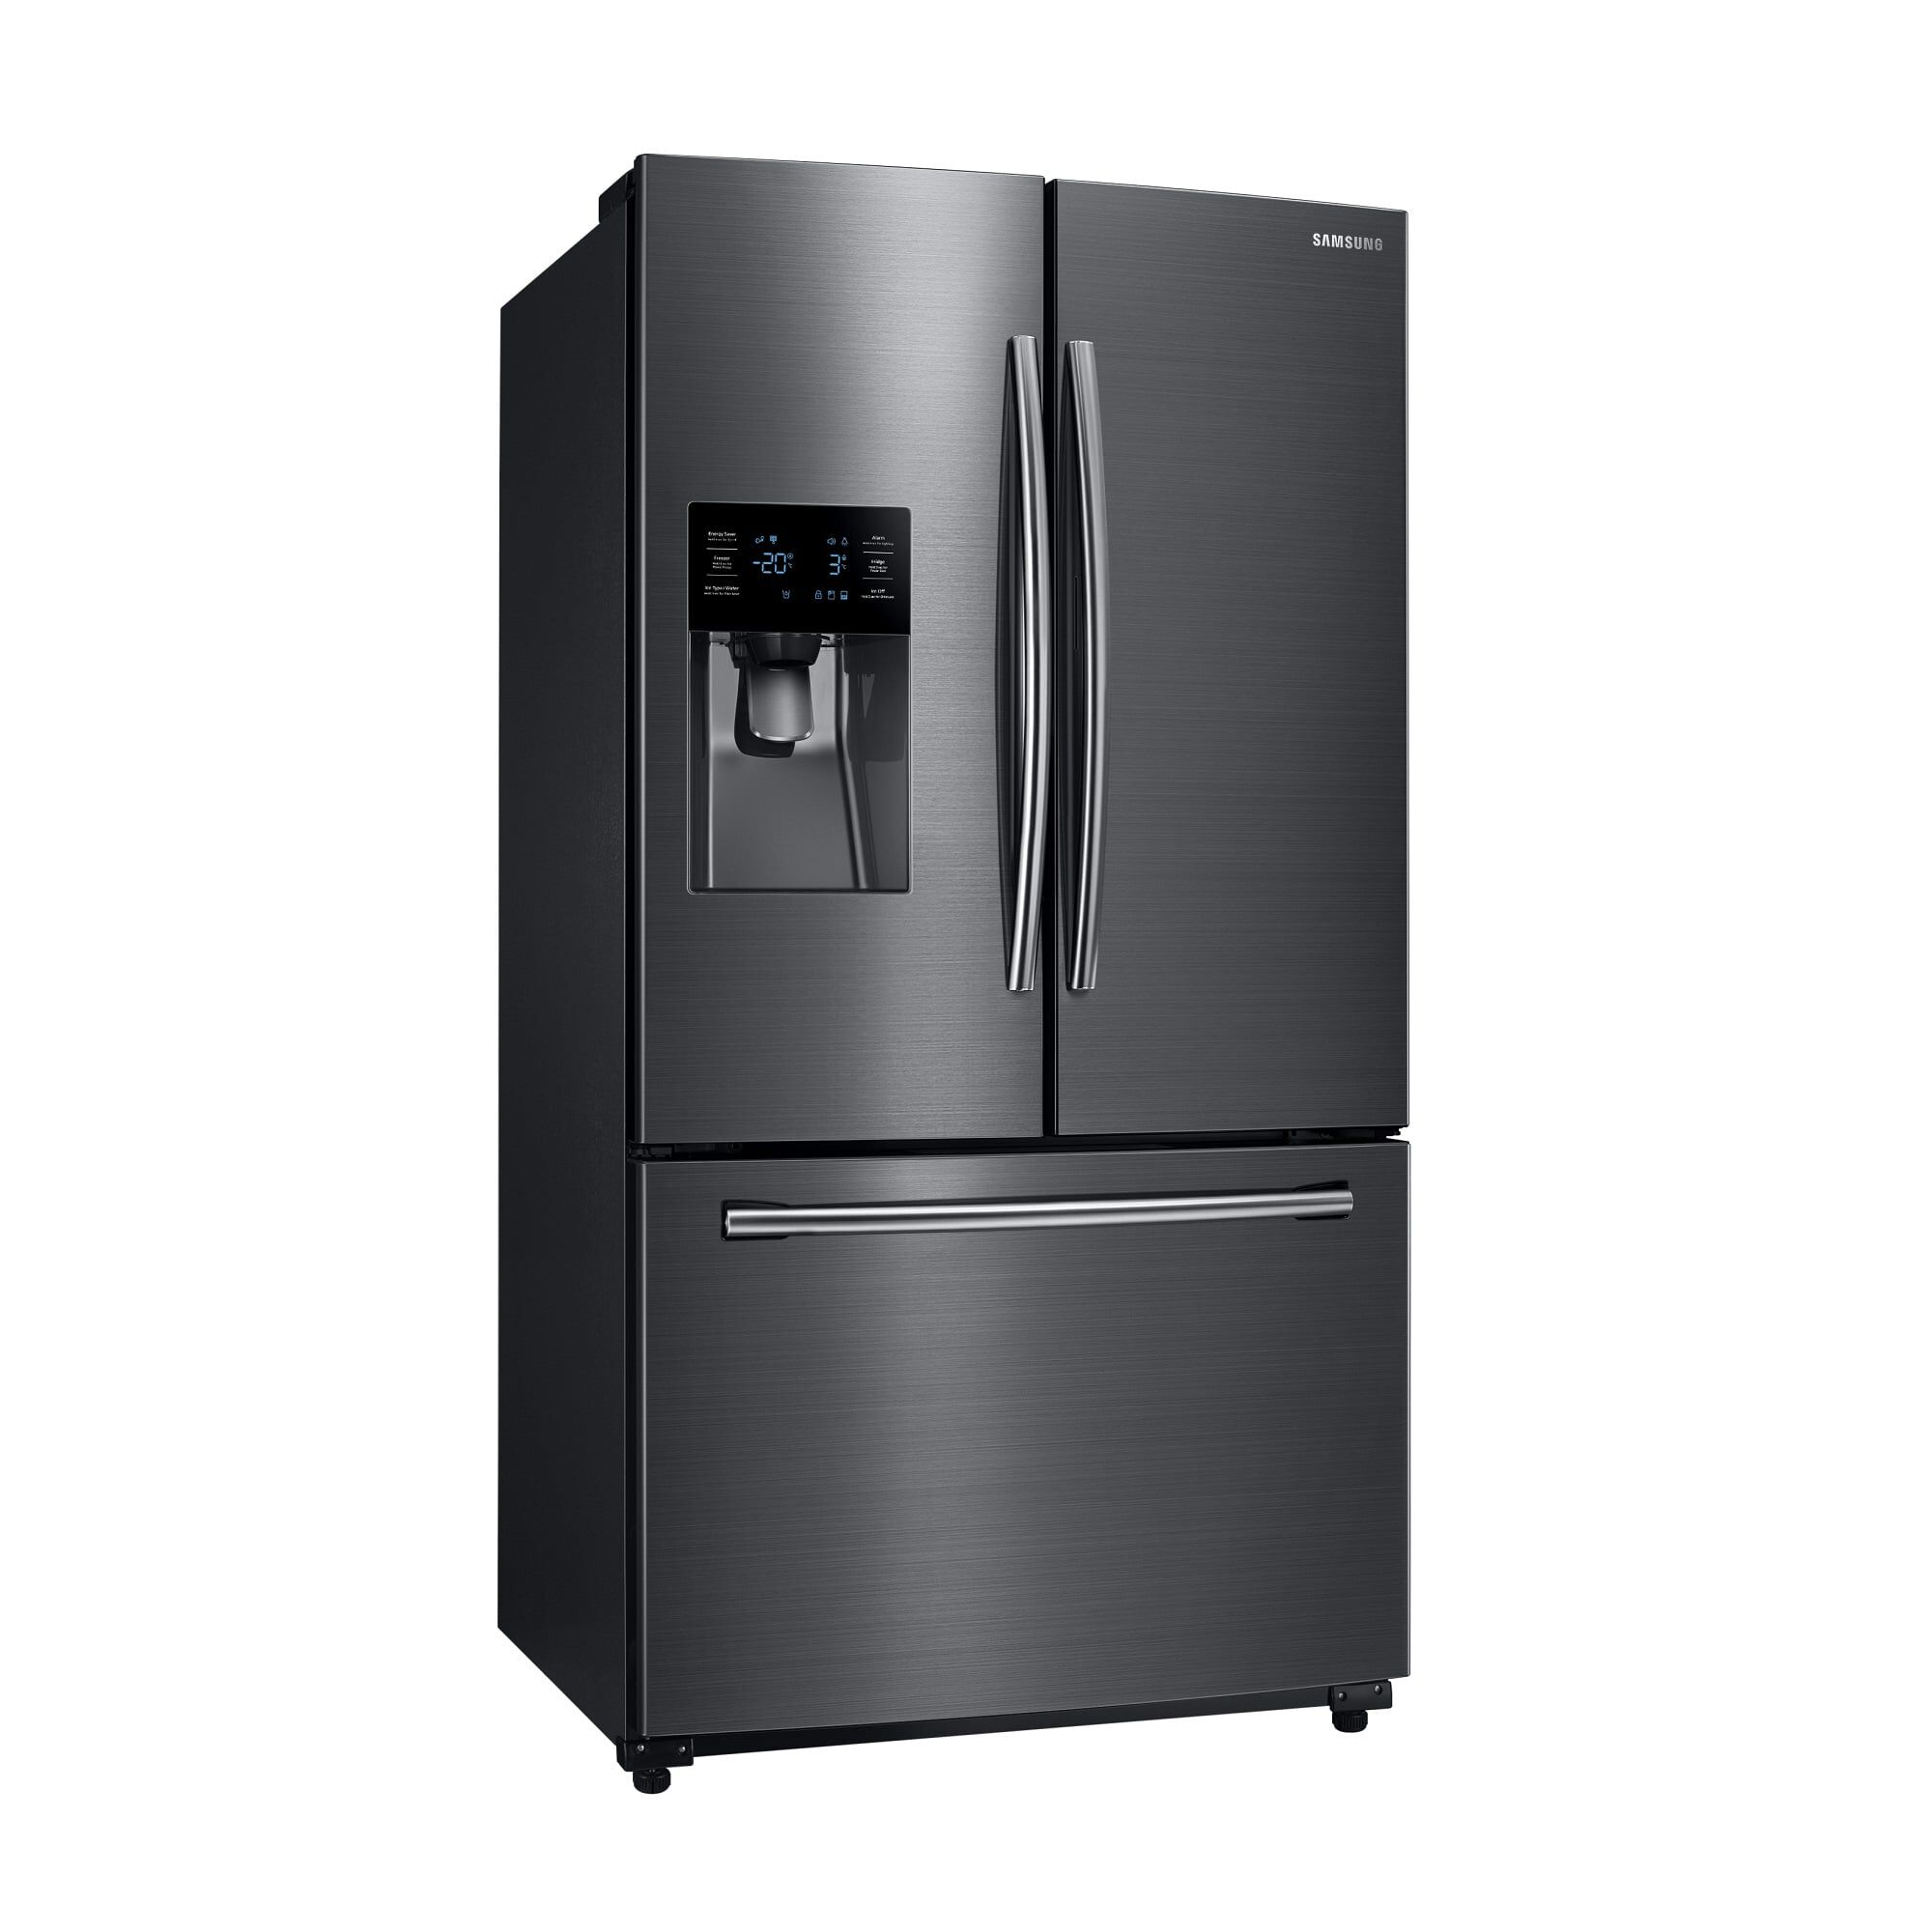 Samsung Refrigerators Samsung 25 Cu Ft French Door